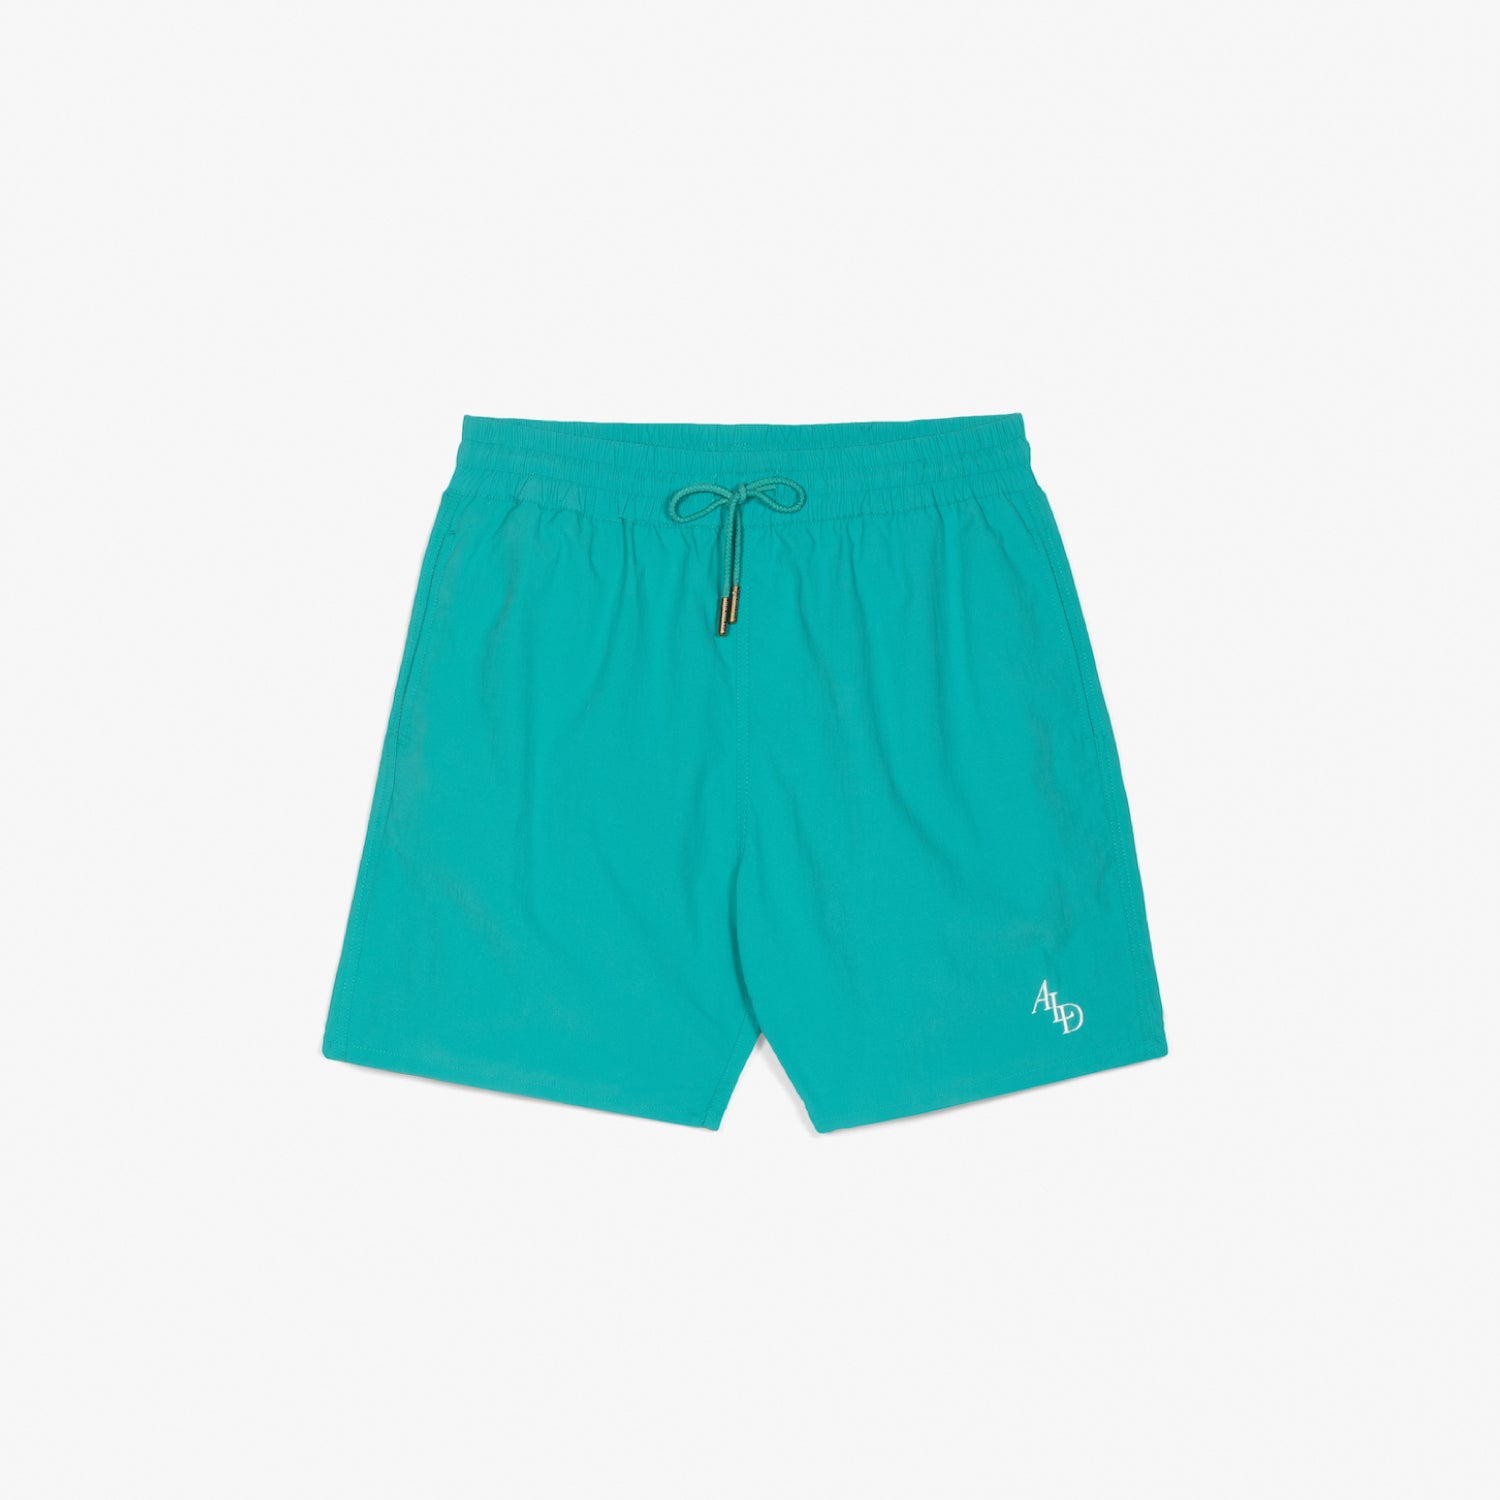 MONOGRAM NYLON SHORTS - AQUA